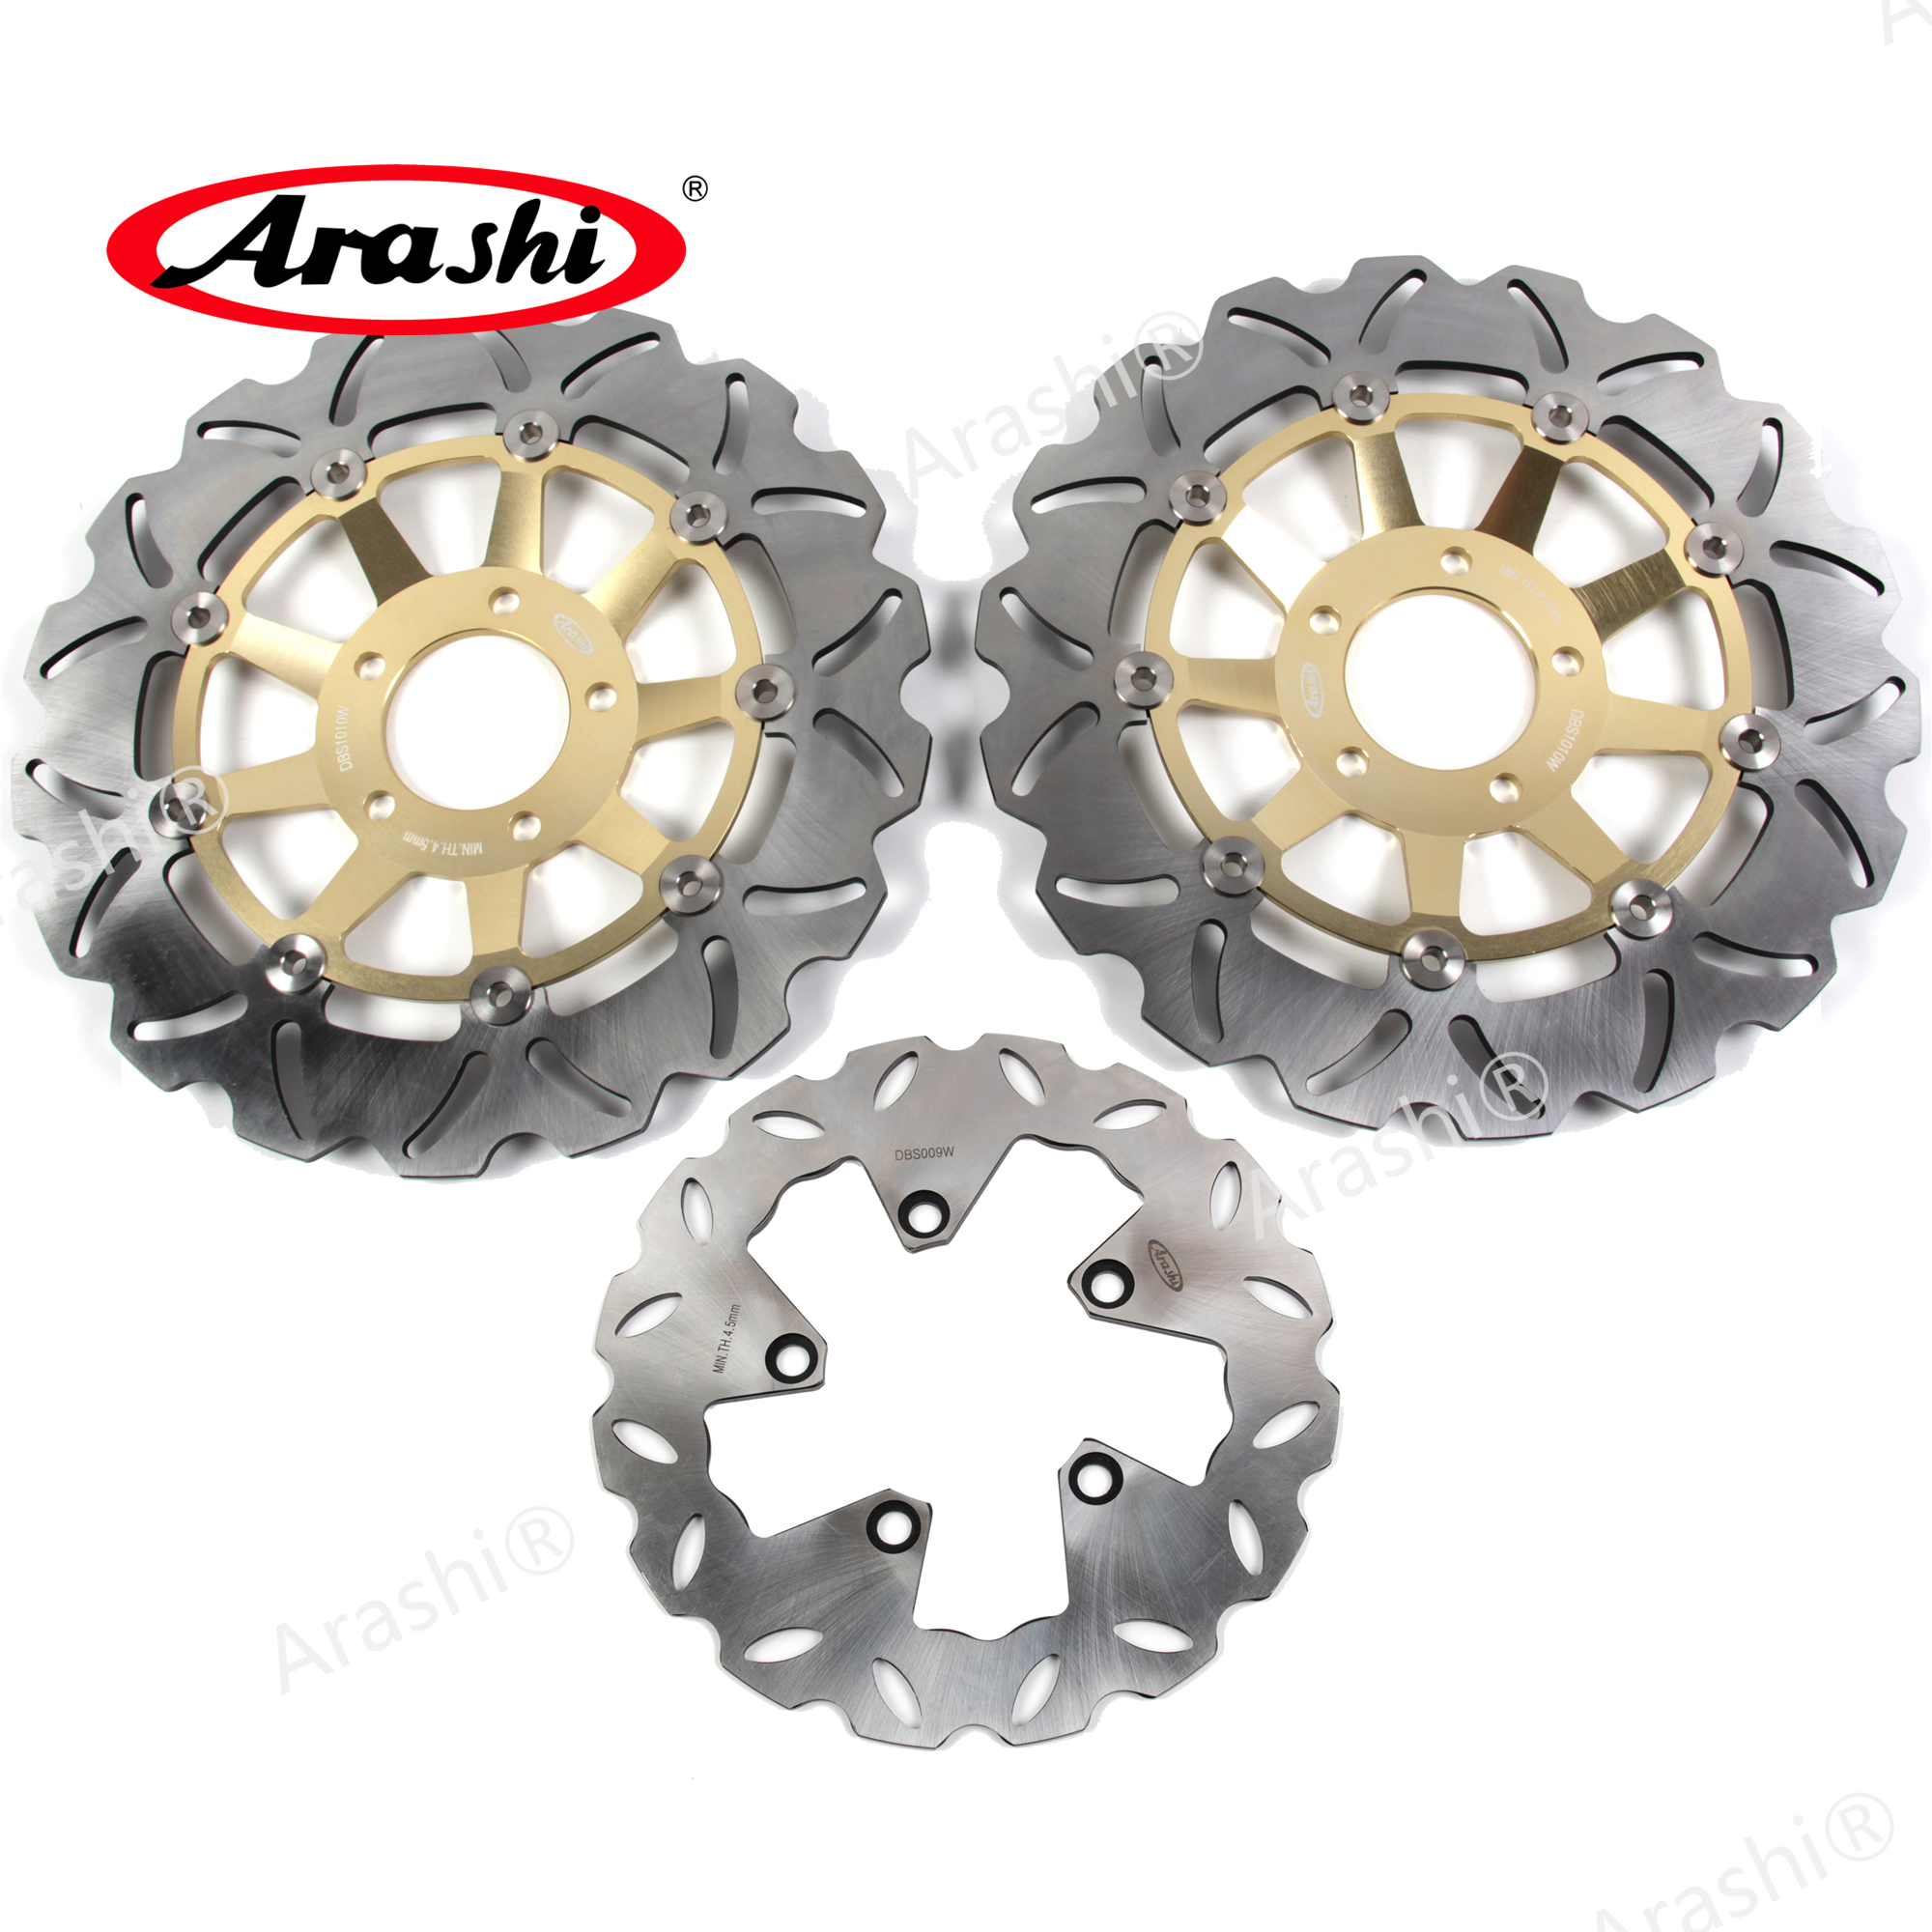 Arashi 1 Set 310 / 240 mm For SUZUKI GSF <font><b>BANDIT</b></font> <font><b>1200</b></font> 1996 - 2005 CNC Front Rear Brake Disc Brake Rotors <font><b>GSF1200</b></font> <font><b>BANDIT</b></font> 2002 2003 image